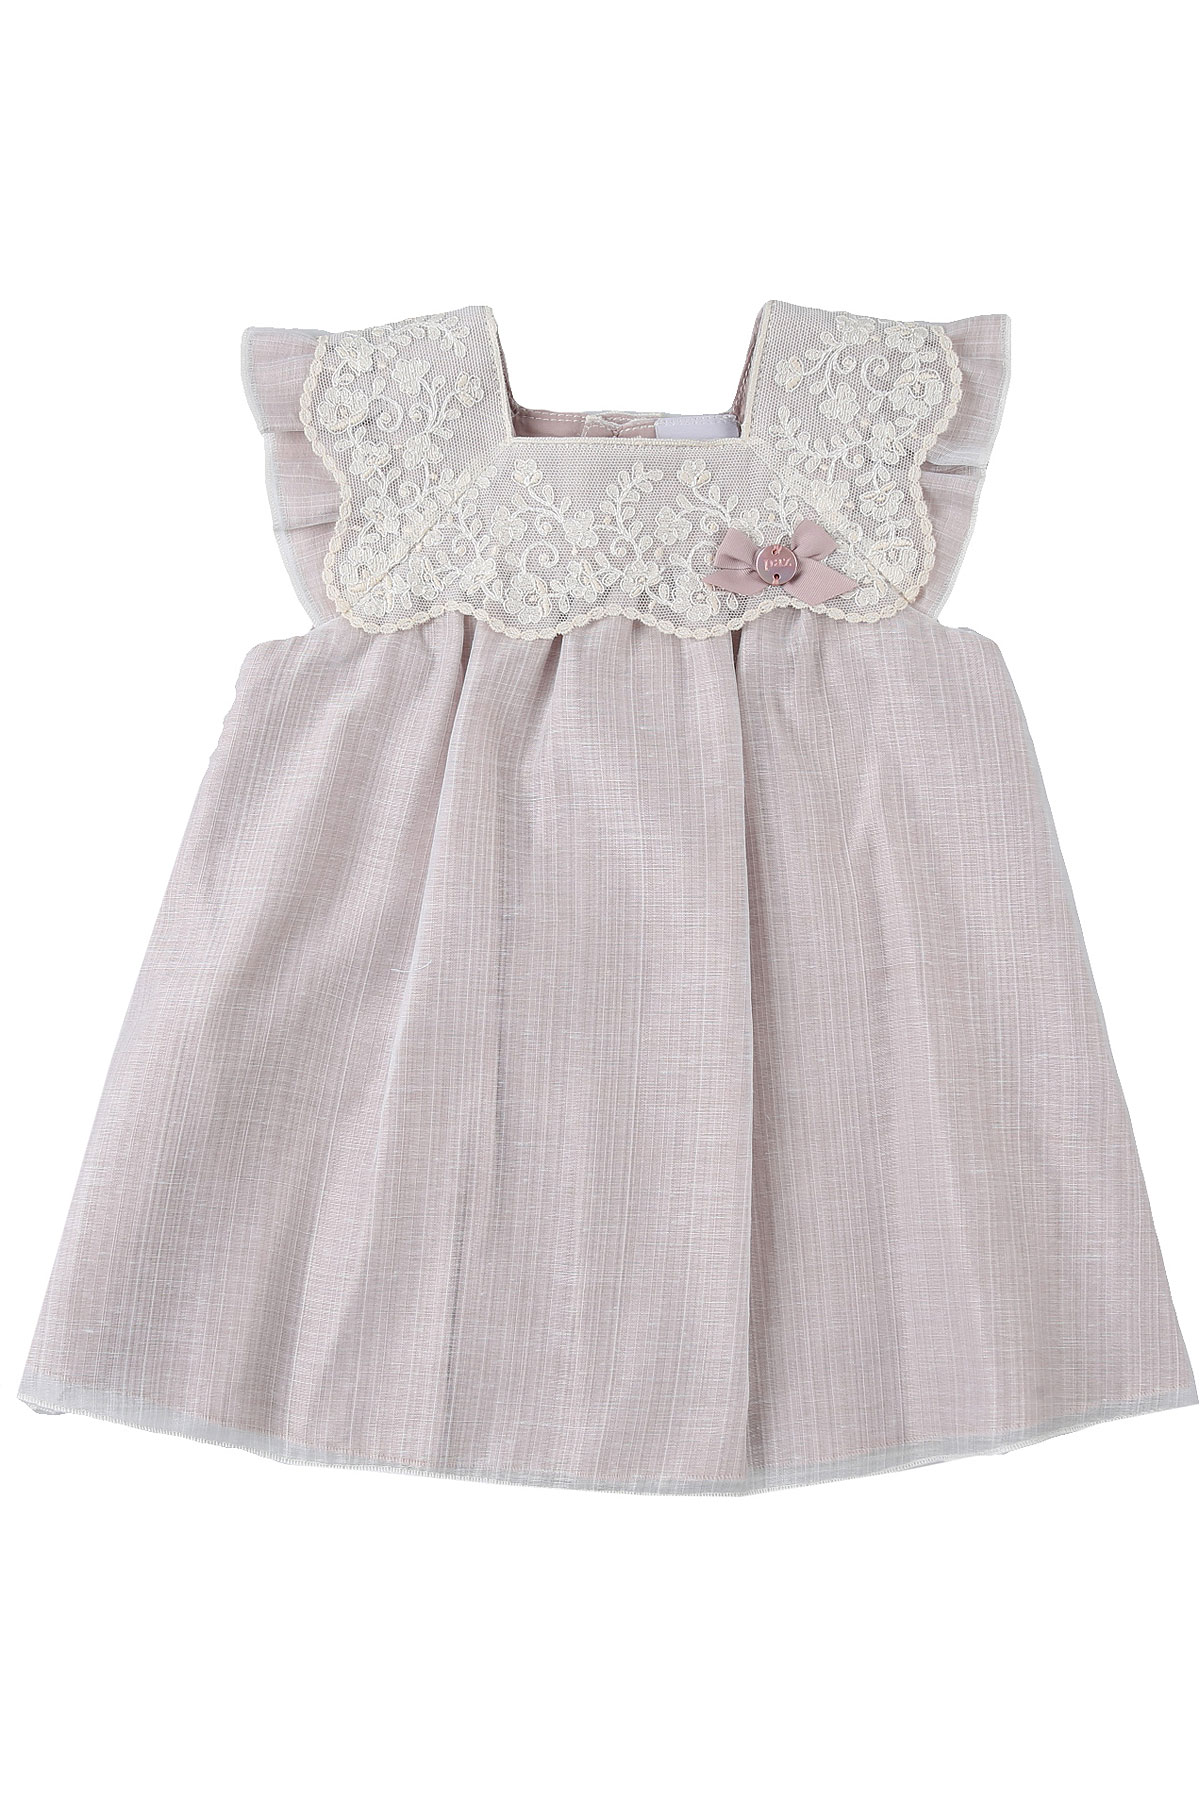 Paz Rodriguez Baby Dress for Girls On Sale, Antic Rose, polyester, 2019, 6M 9M